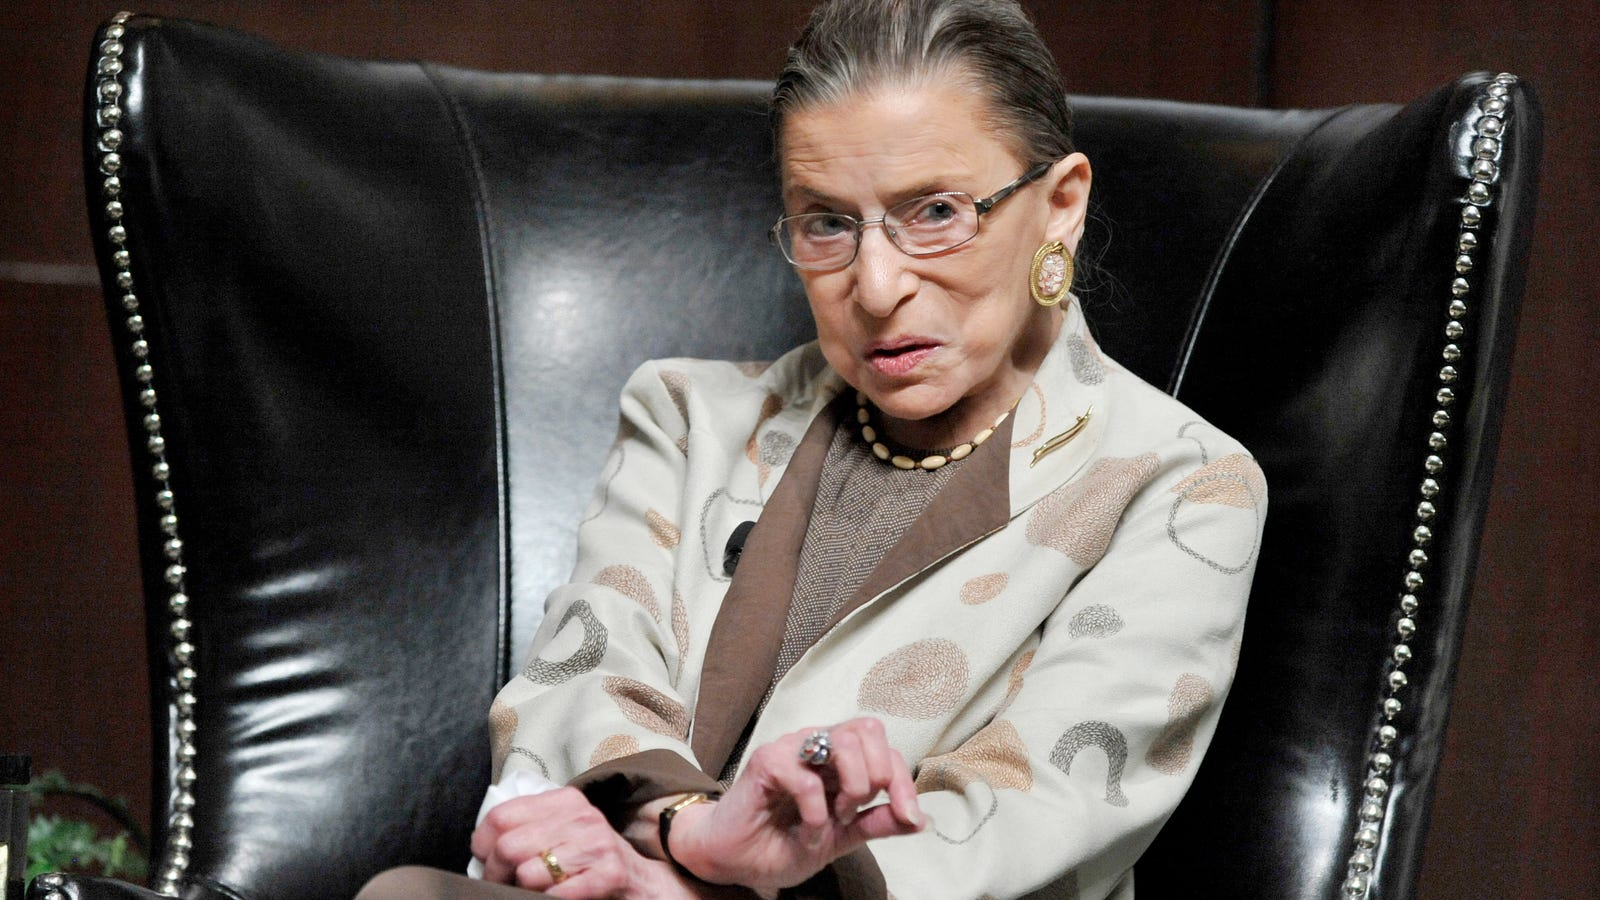 ruth bader ginsburg - photo #19